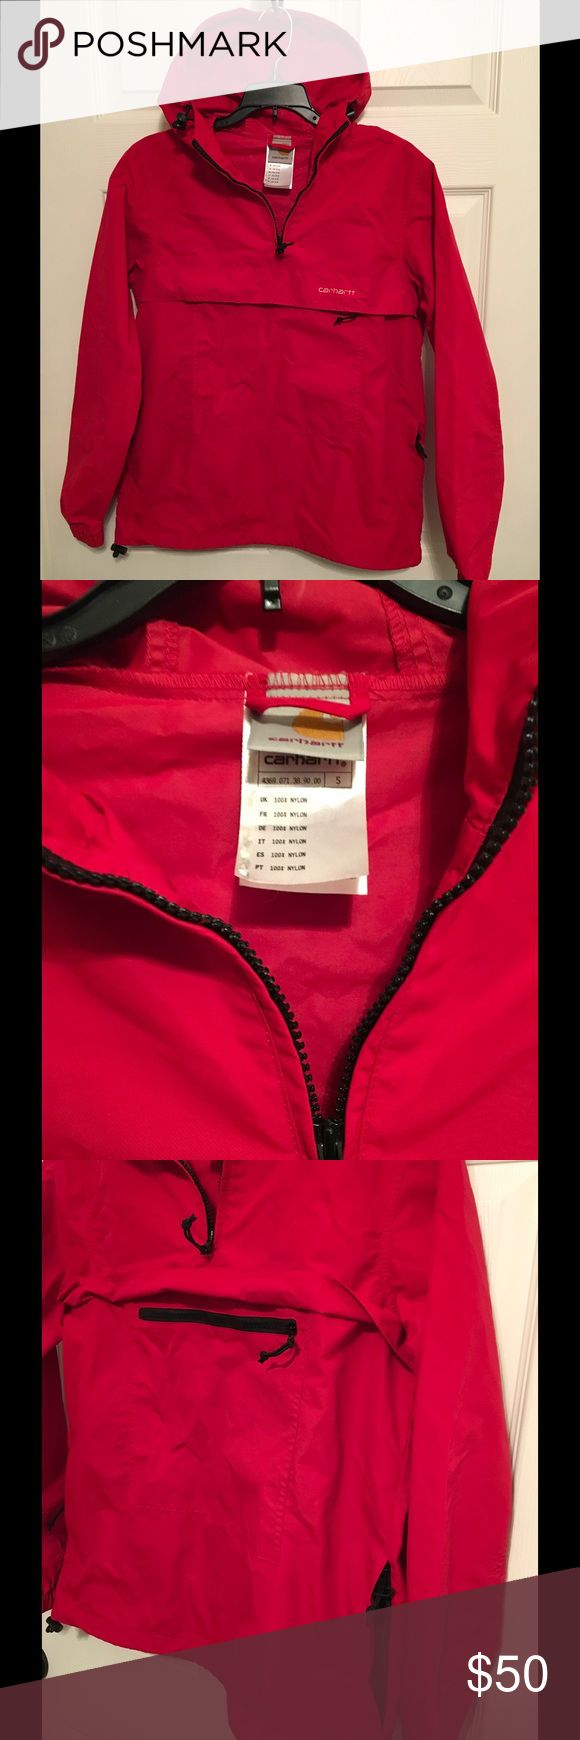 Carhartt Hoodie Pullover Carhartt Hoodie Pullover 100% Nylon. Excellent used condition, worn a couple times, no flaws. Size:S, Color:red. Carhartt Jackets & Coats Lightweight & Shirt Jackets